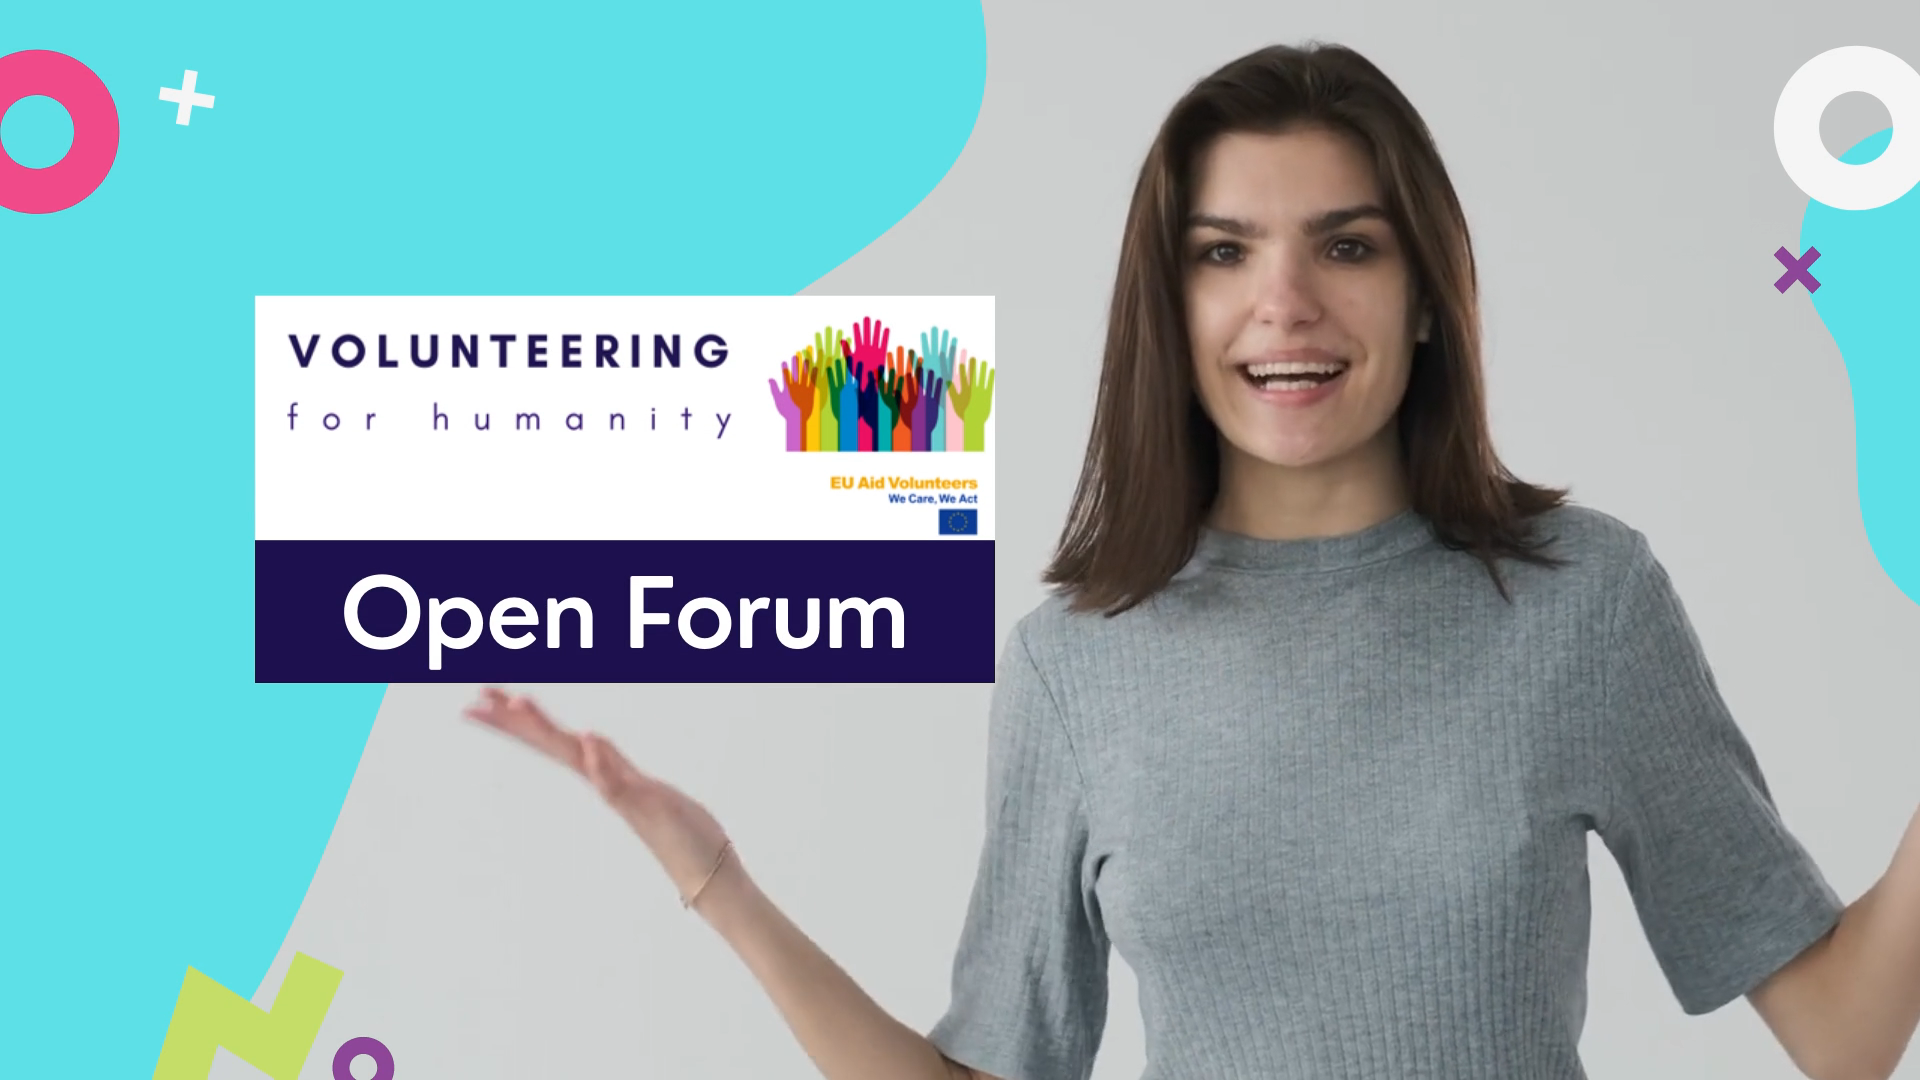 woman with hands spread in front of a backdrop saying volunteering for humanity Open Forum